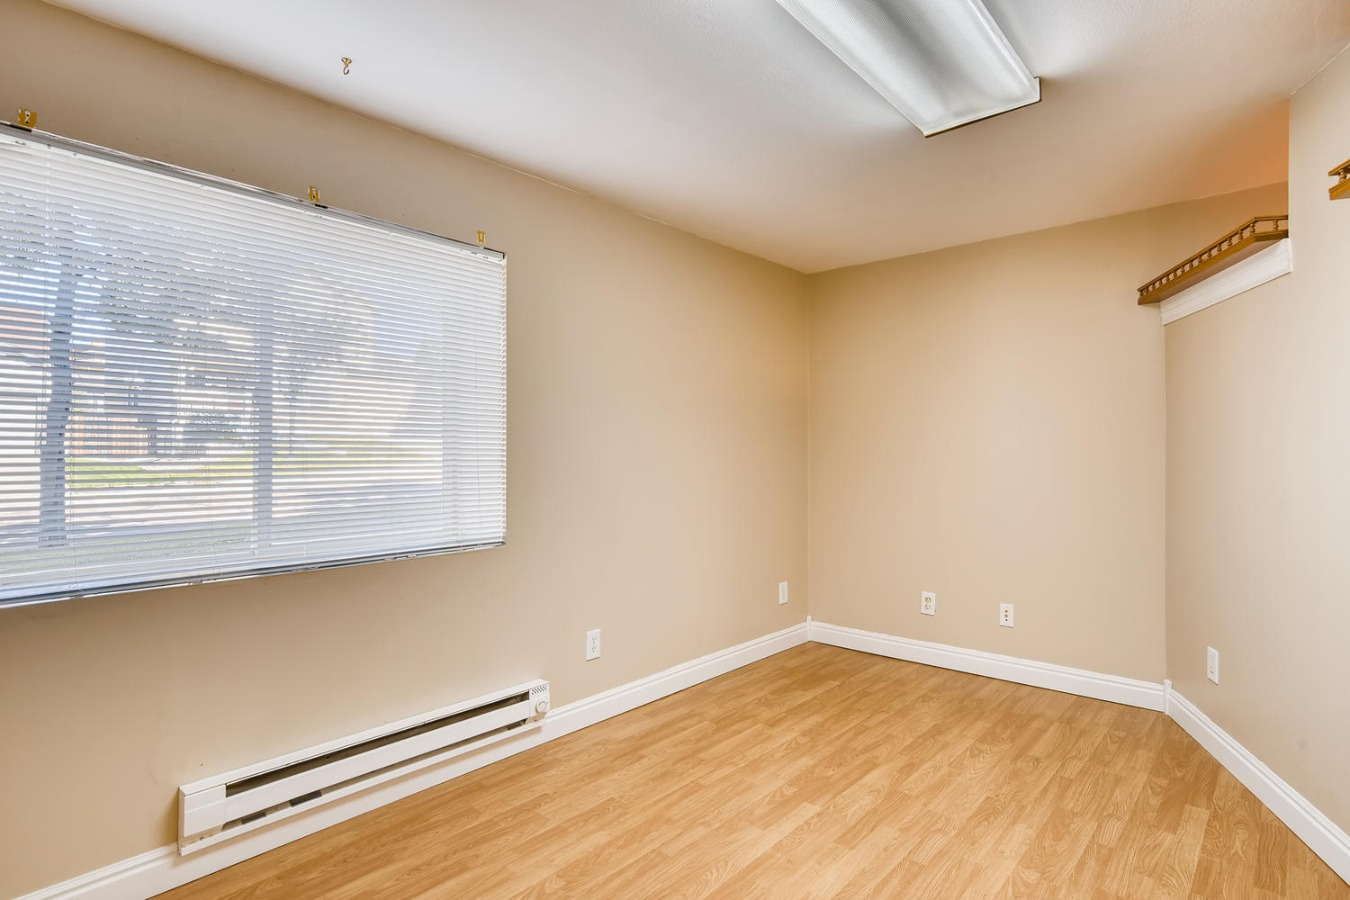 Room could be used for hobbies/exercise area